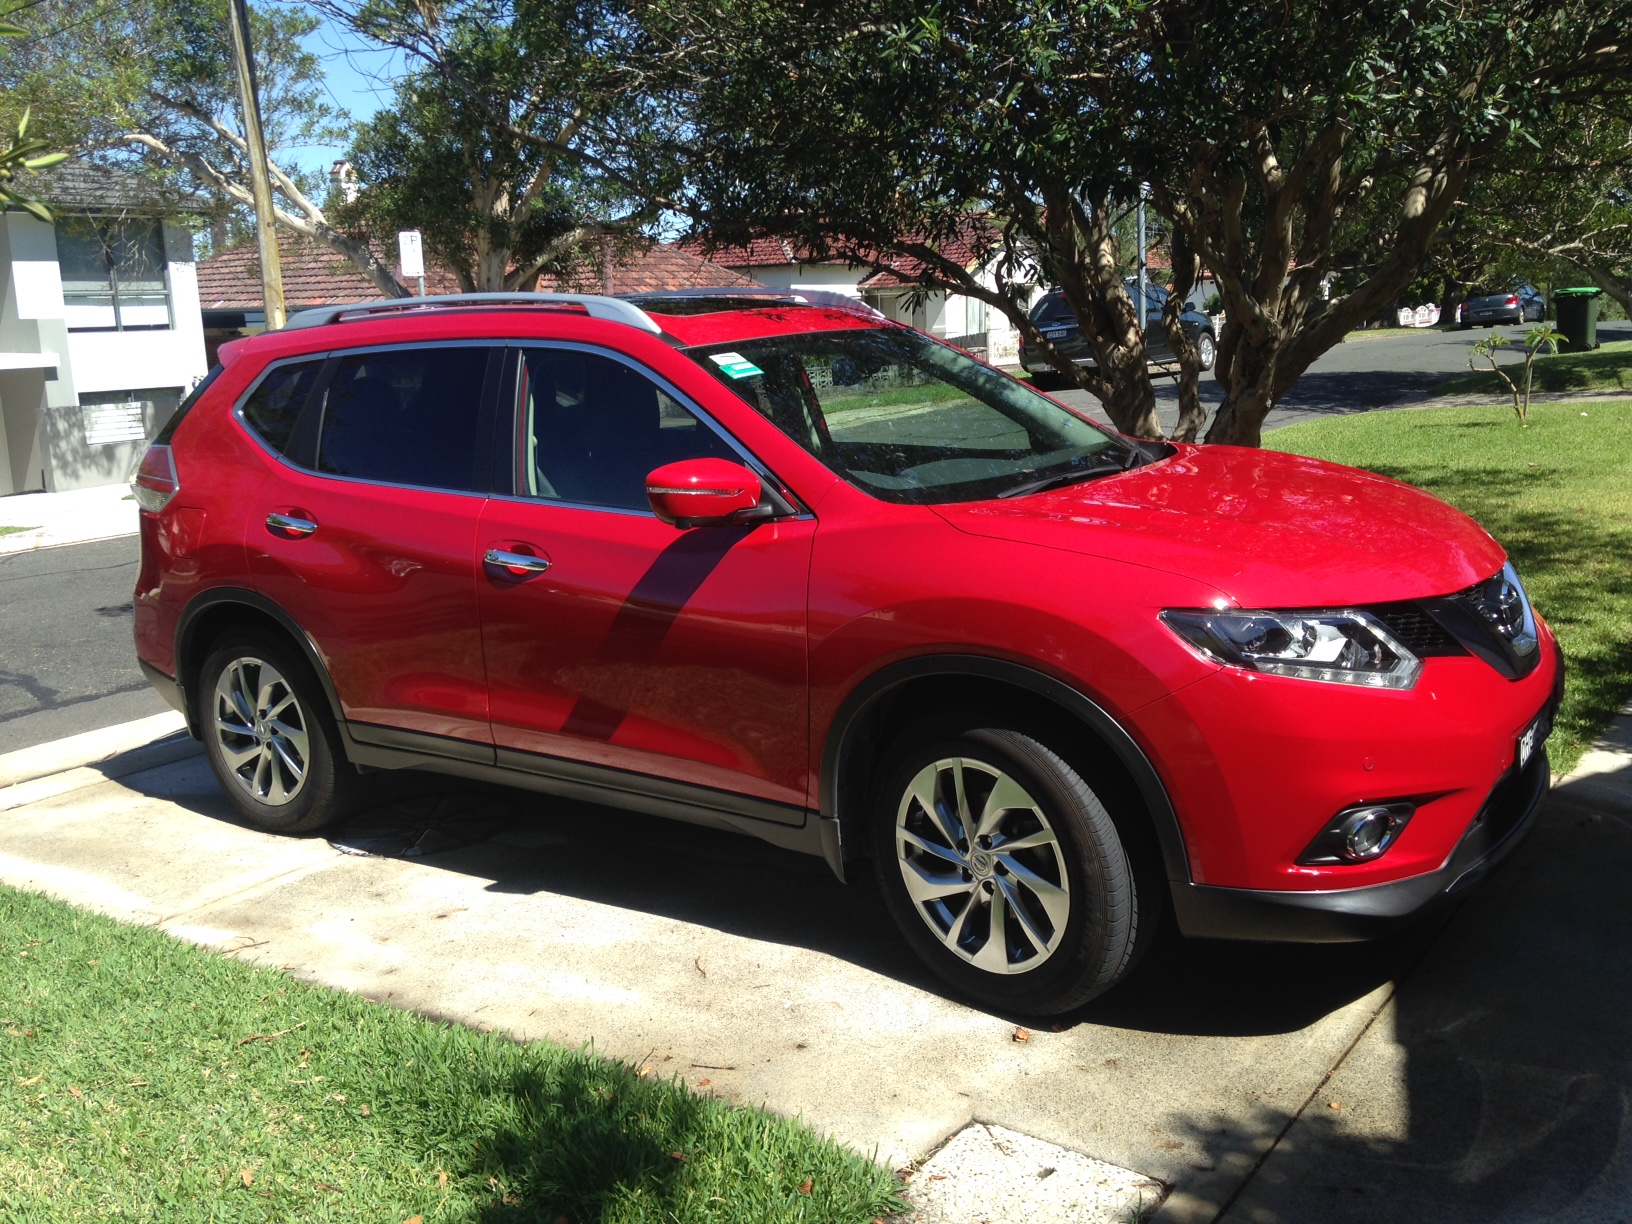 Picture of Rodolphe's 2016 Nissan X-Trail